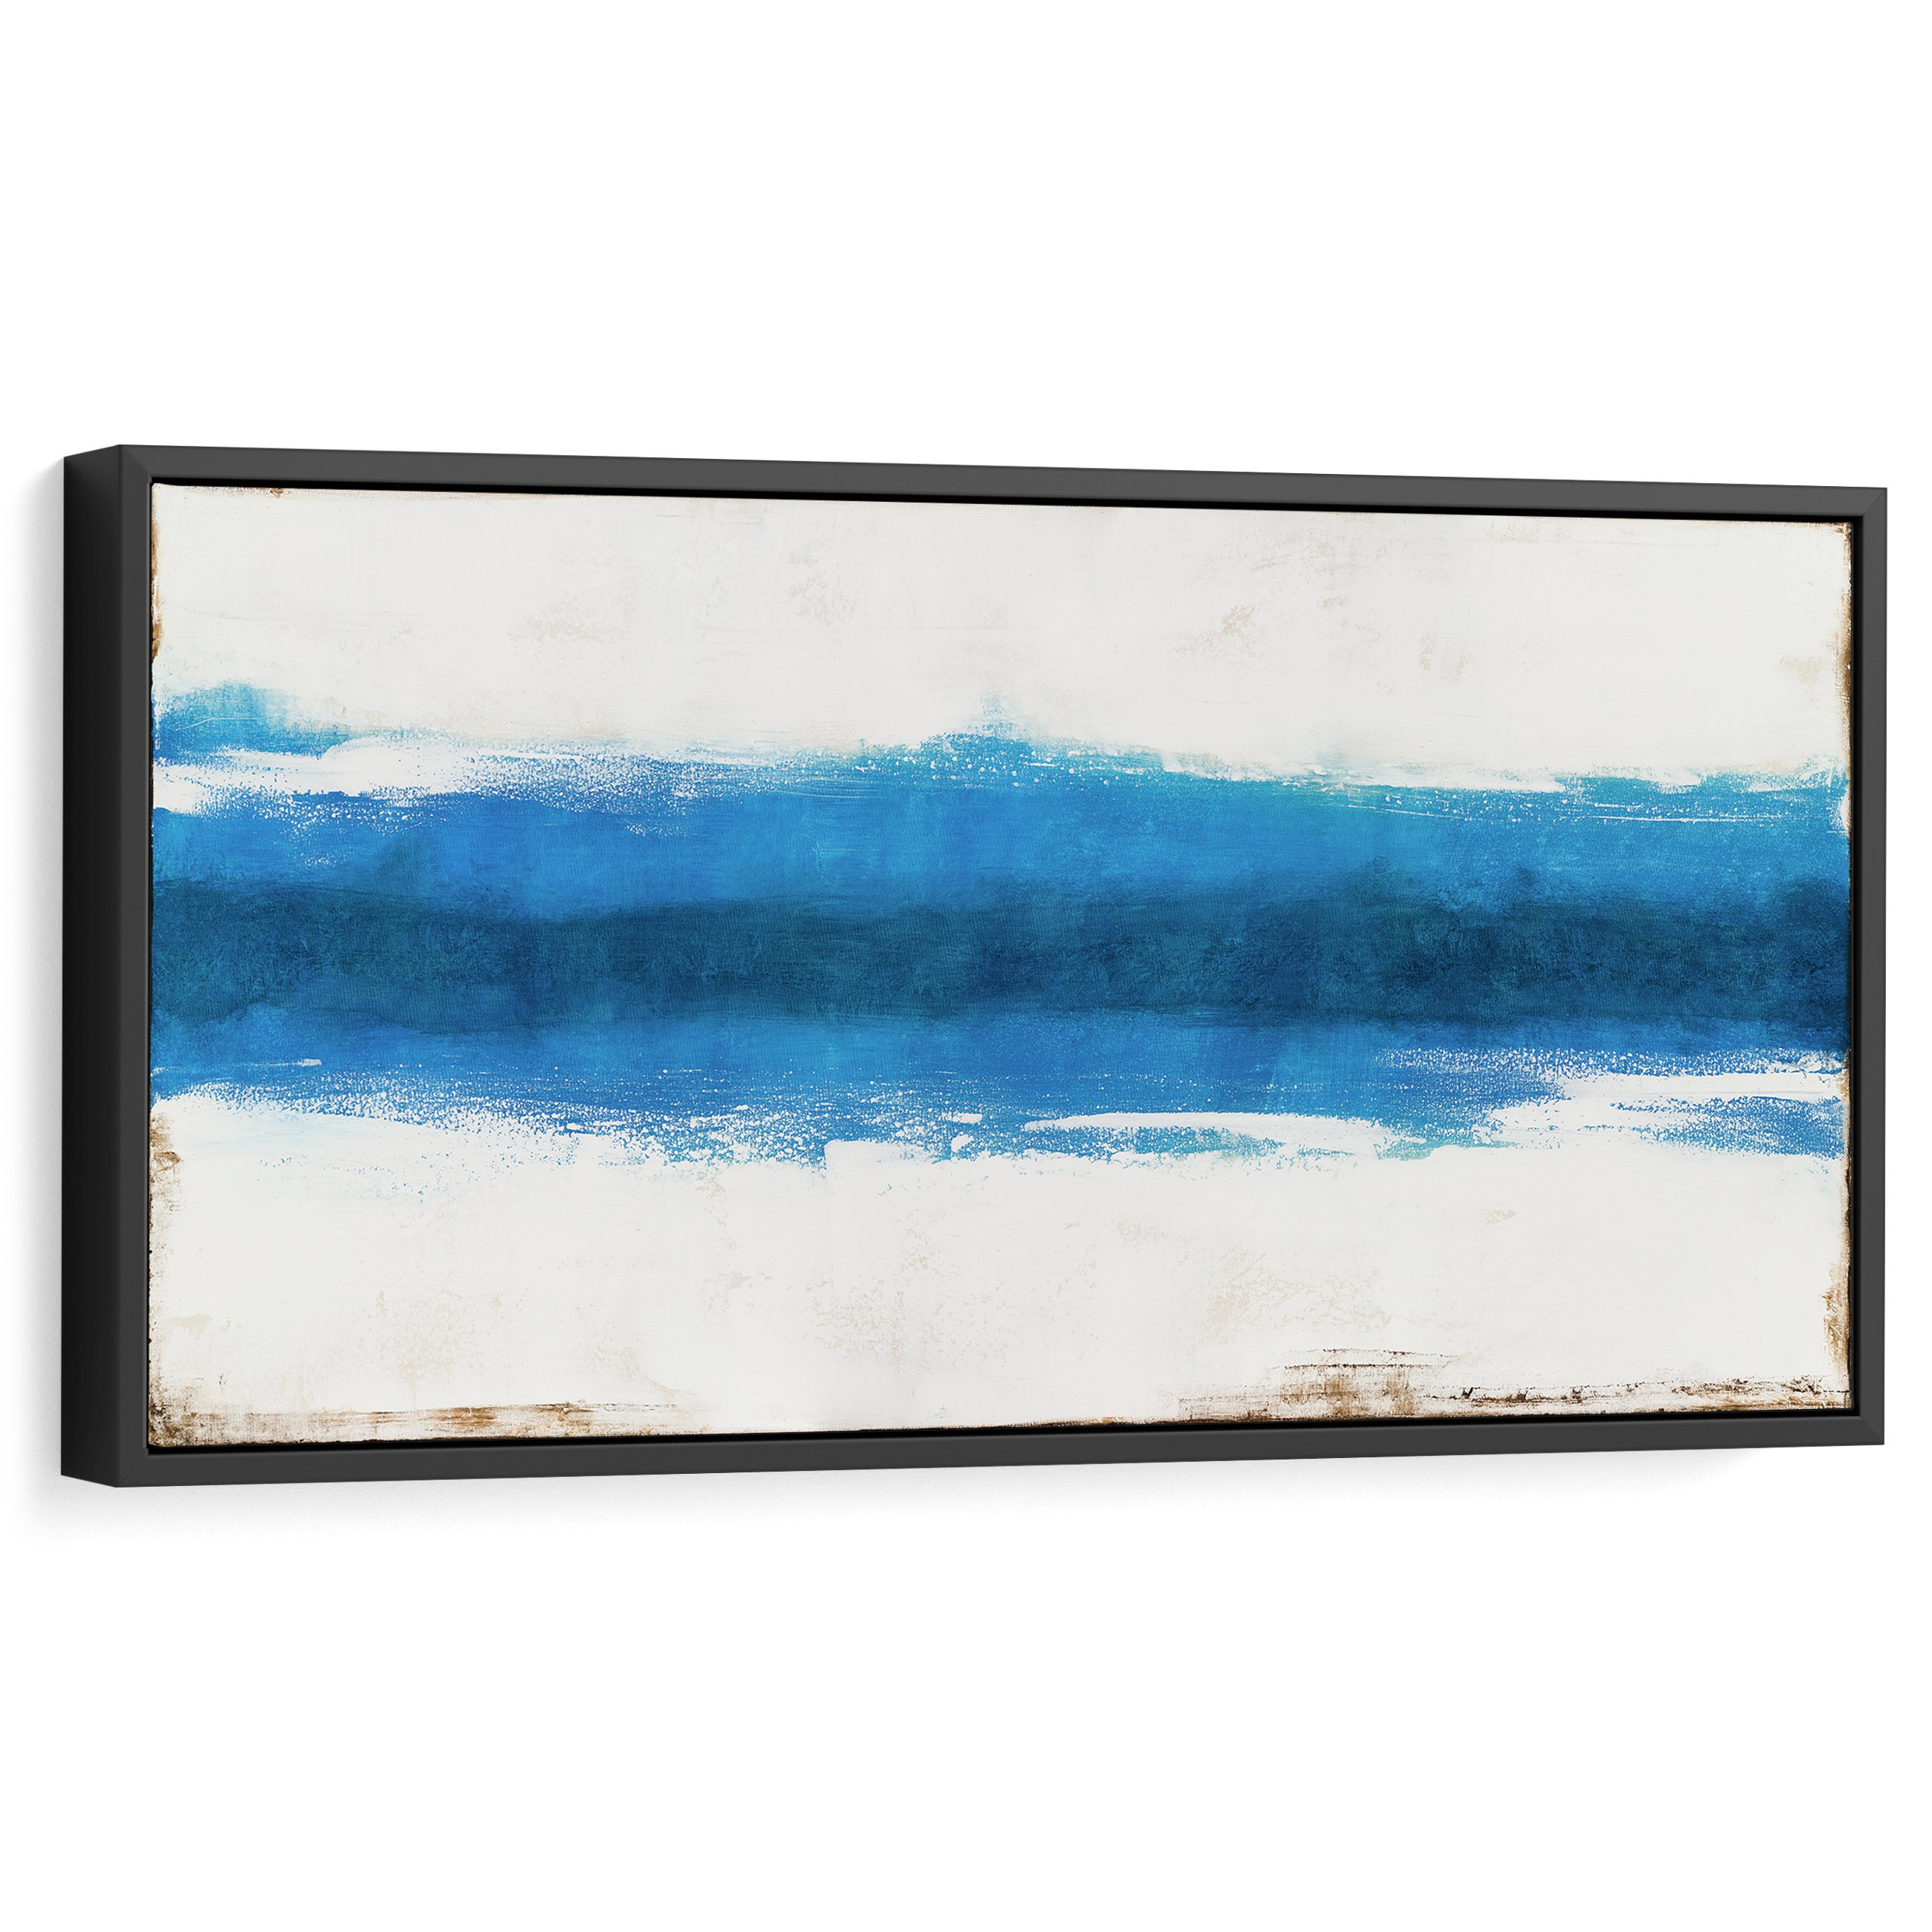 Nature abstract wall art for interior design and home decor, Blue, Large, Wide, Modern art